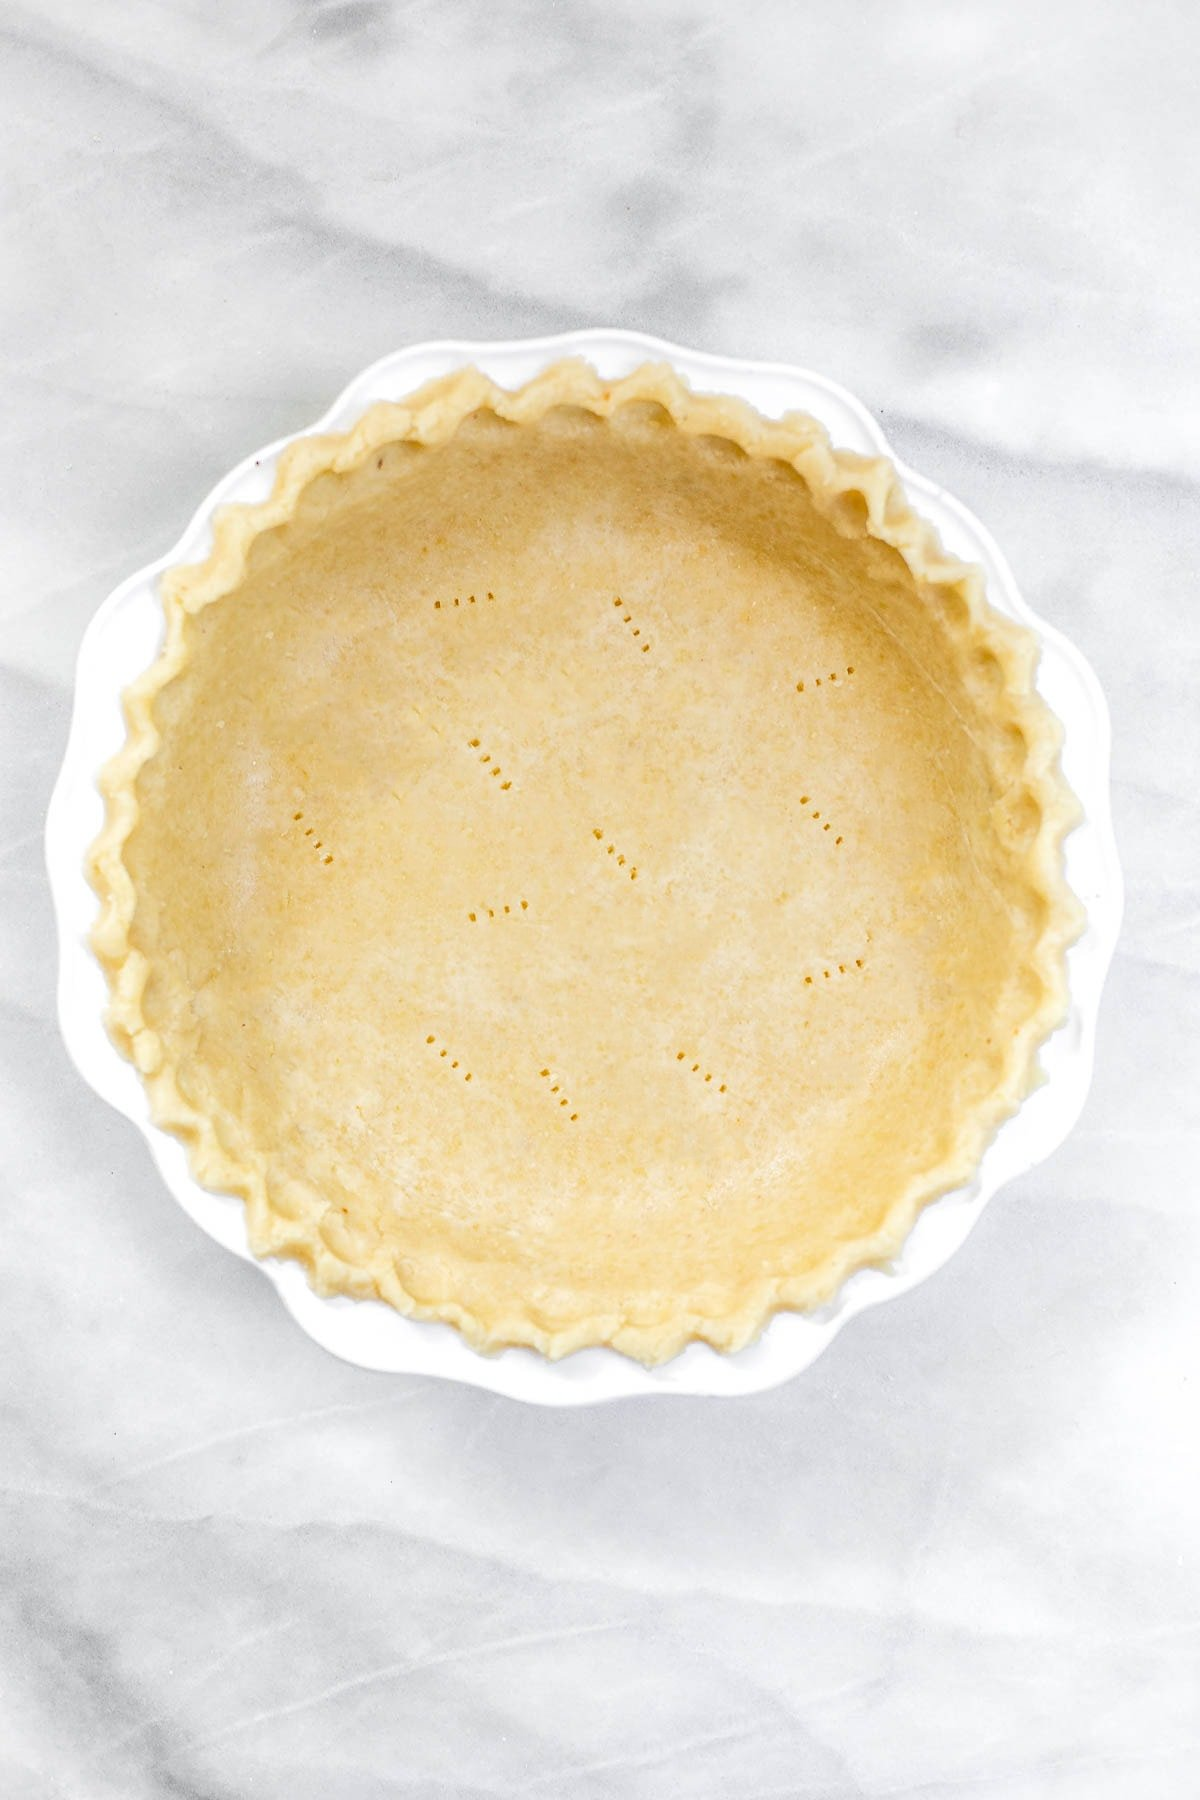 Final gluten free pie crust in a white plate.